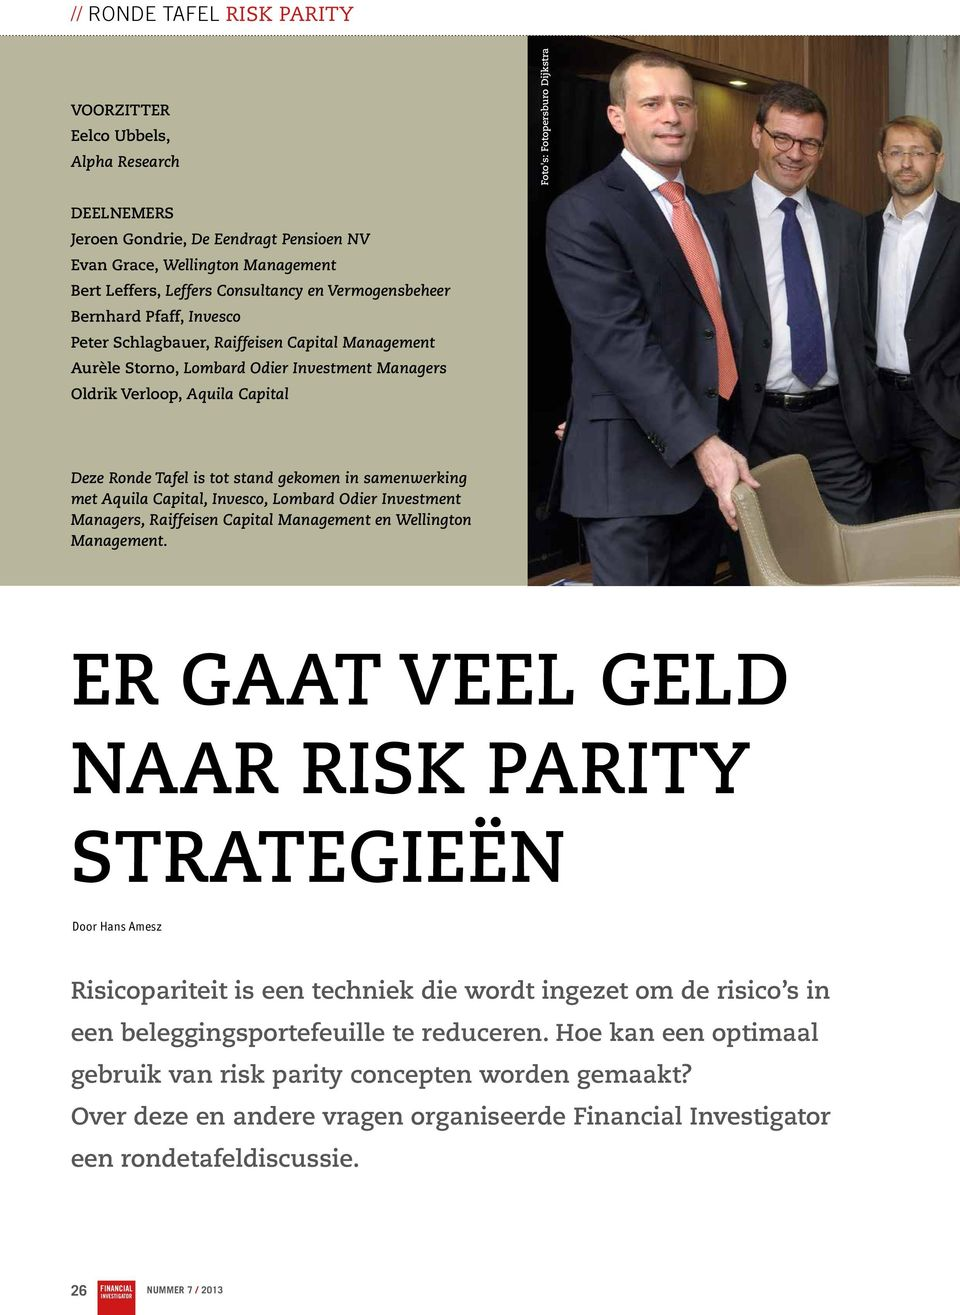 gekomen in samenwerking met Aquila Capital, Invesco, Lombard Odier Investment Managers, Raiffeisen Capital Management en Wellington Management.